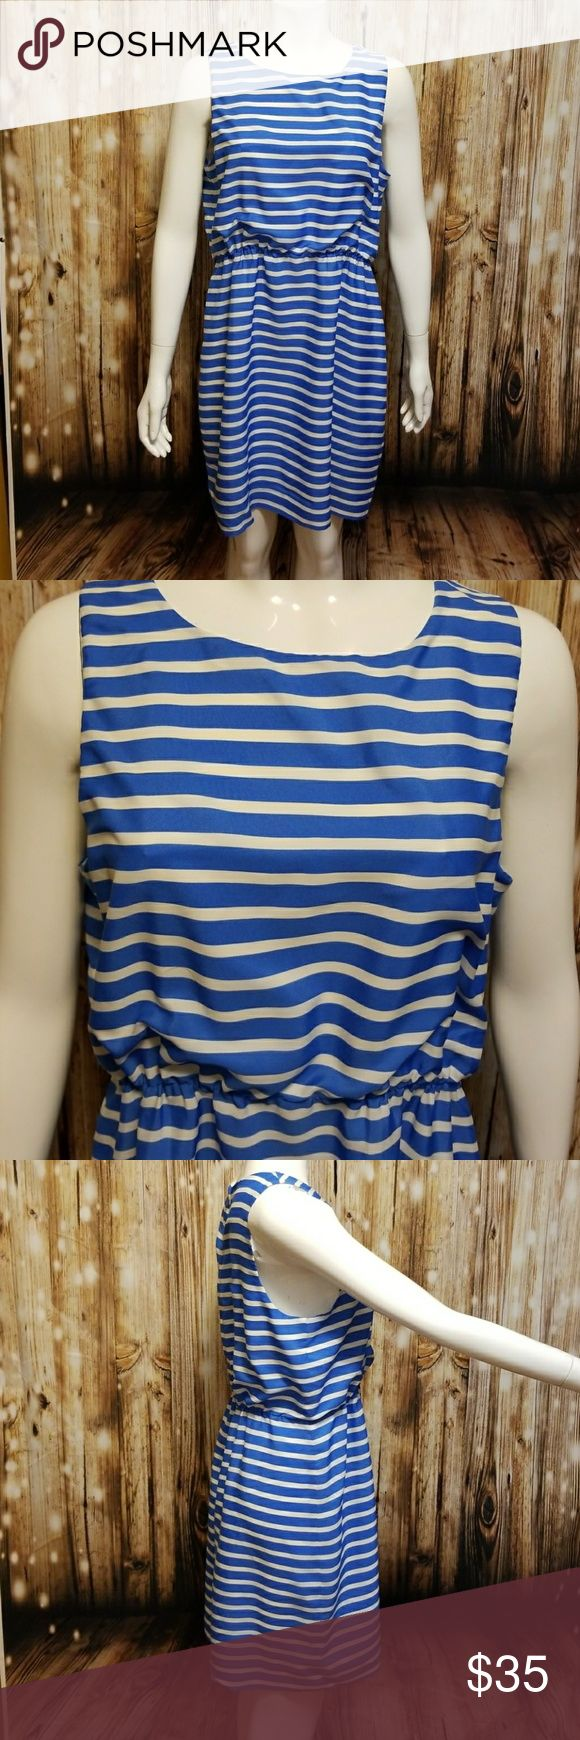 "J.Crew blue & white striped dress Blue and white striped dress with elastic waist and zip up back. Fully lined.  Bust- 21.5"" flat.  Waist- 15""- 19"" flat (elastic). Hips- 23"" flat. Length- 36"".  100% polyester. J. Crew Dresses"